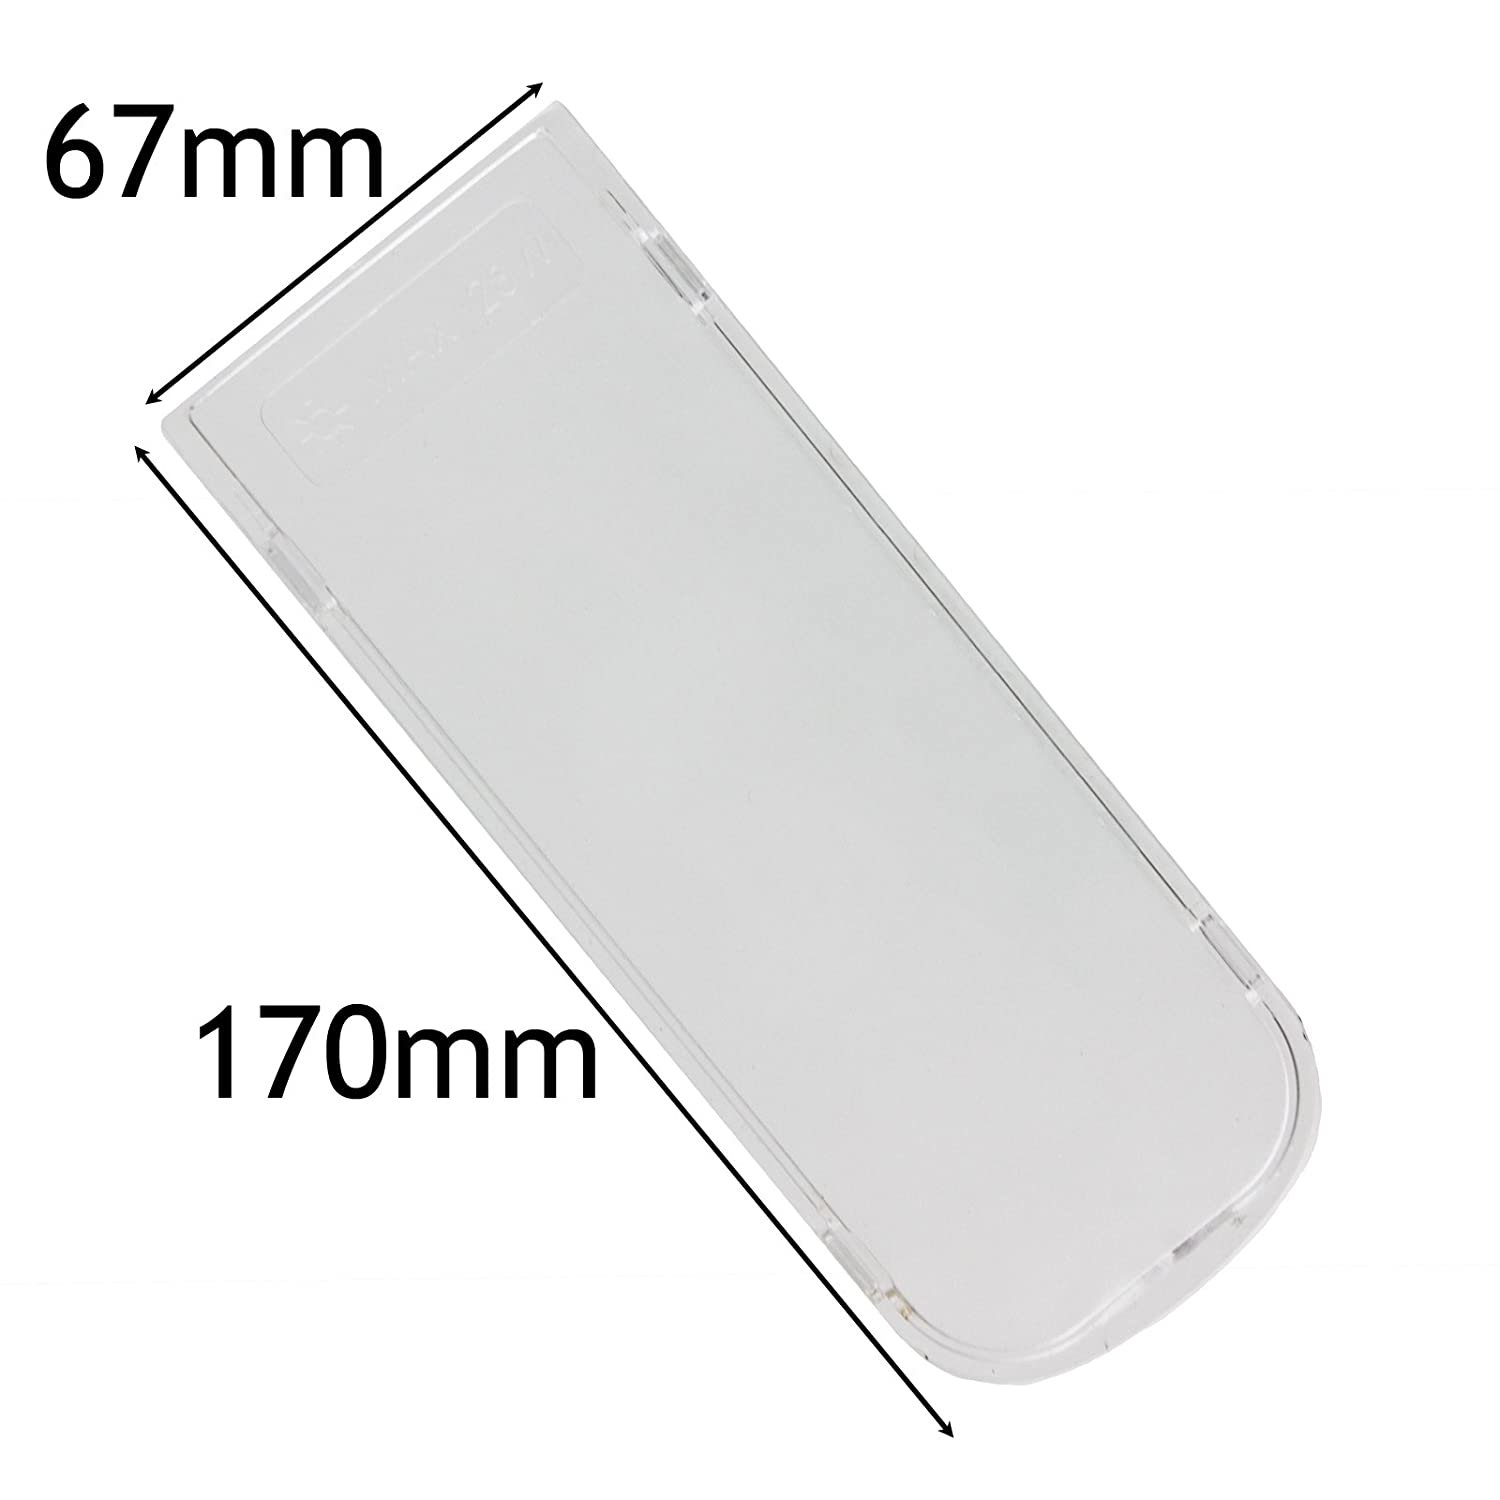 Spares2go Cooker Hood Light Diffuser / Lens Cover Plate (170Mm X 67Mm)